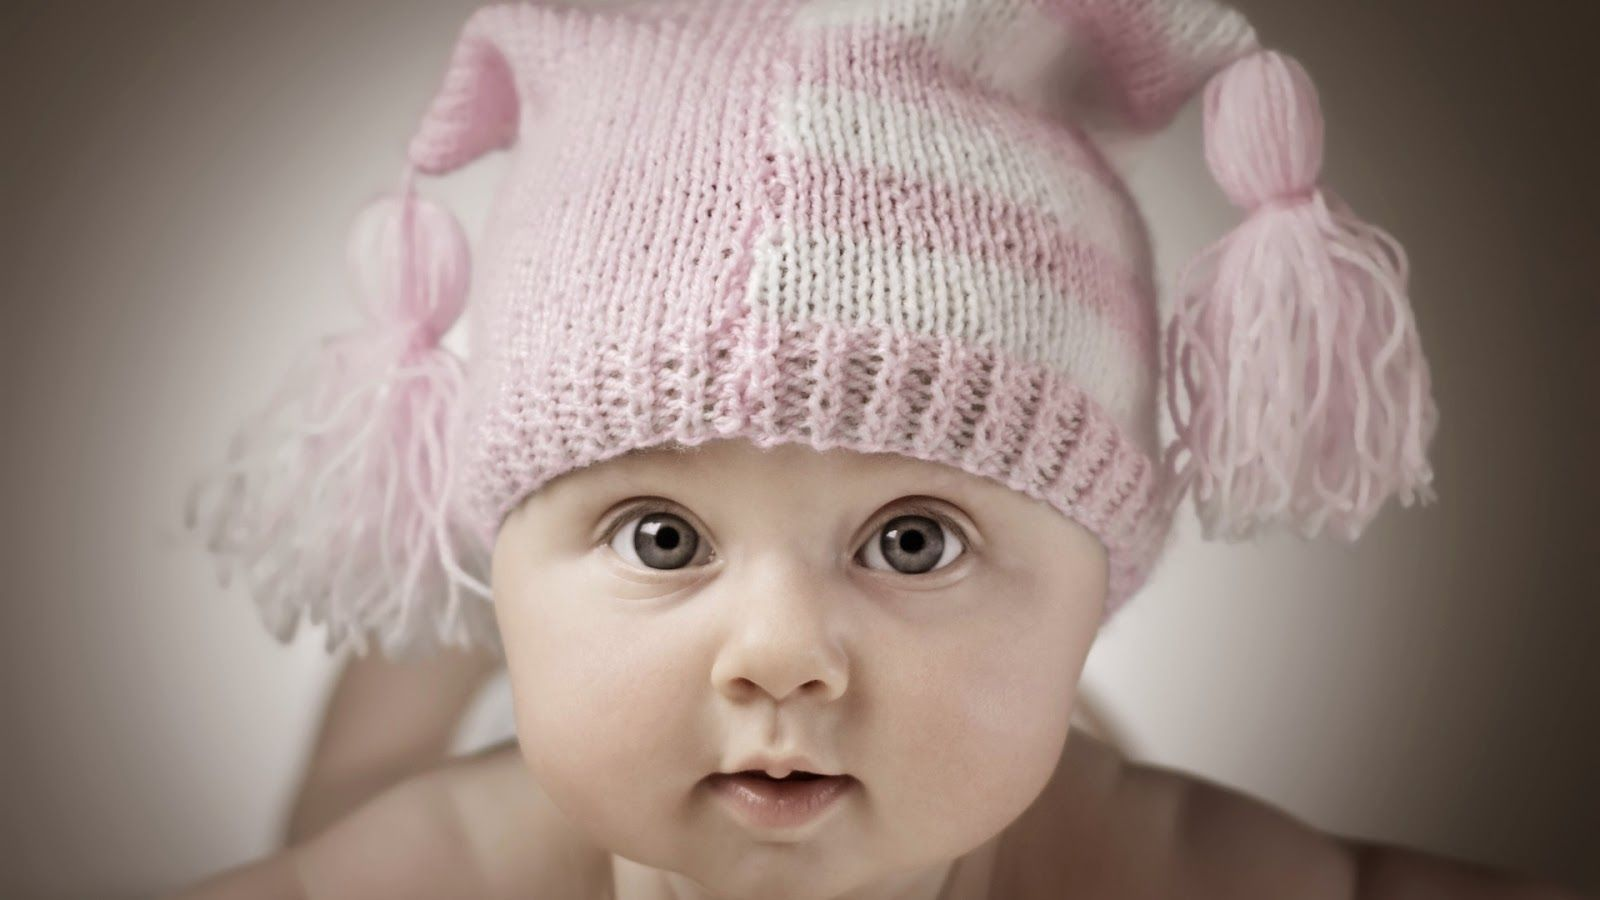 Cute Newborn Baby Wallpapers HD I HD Images